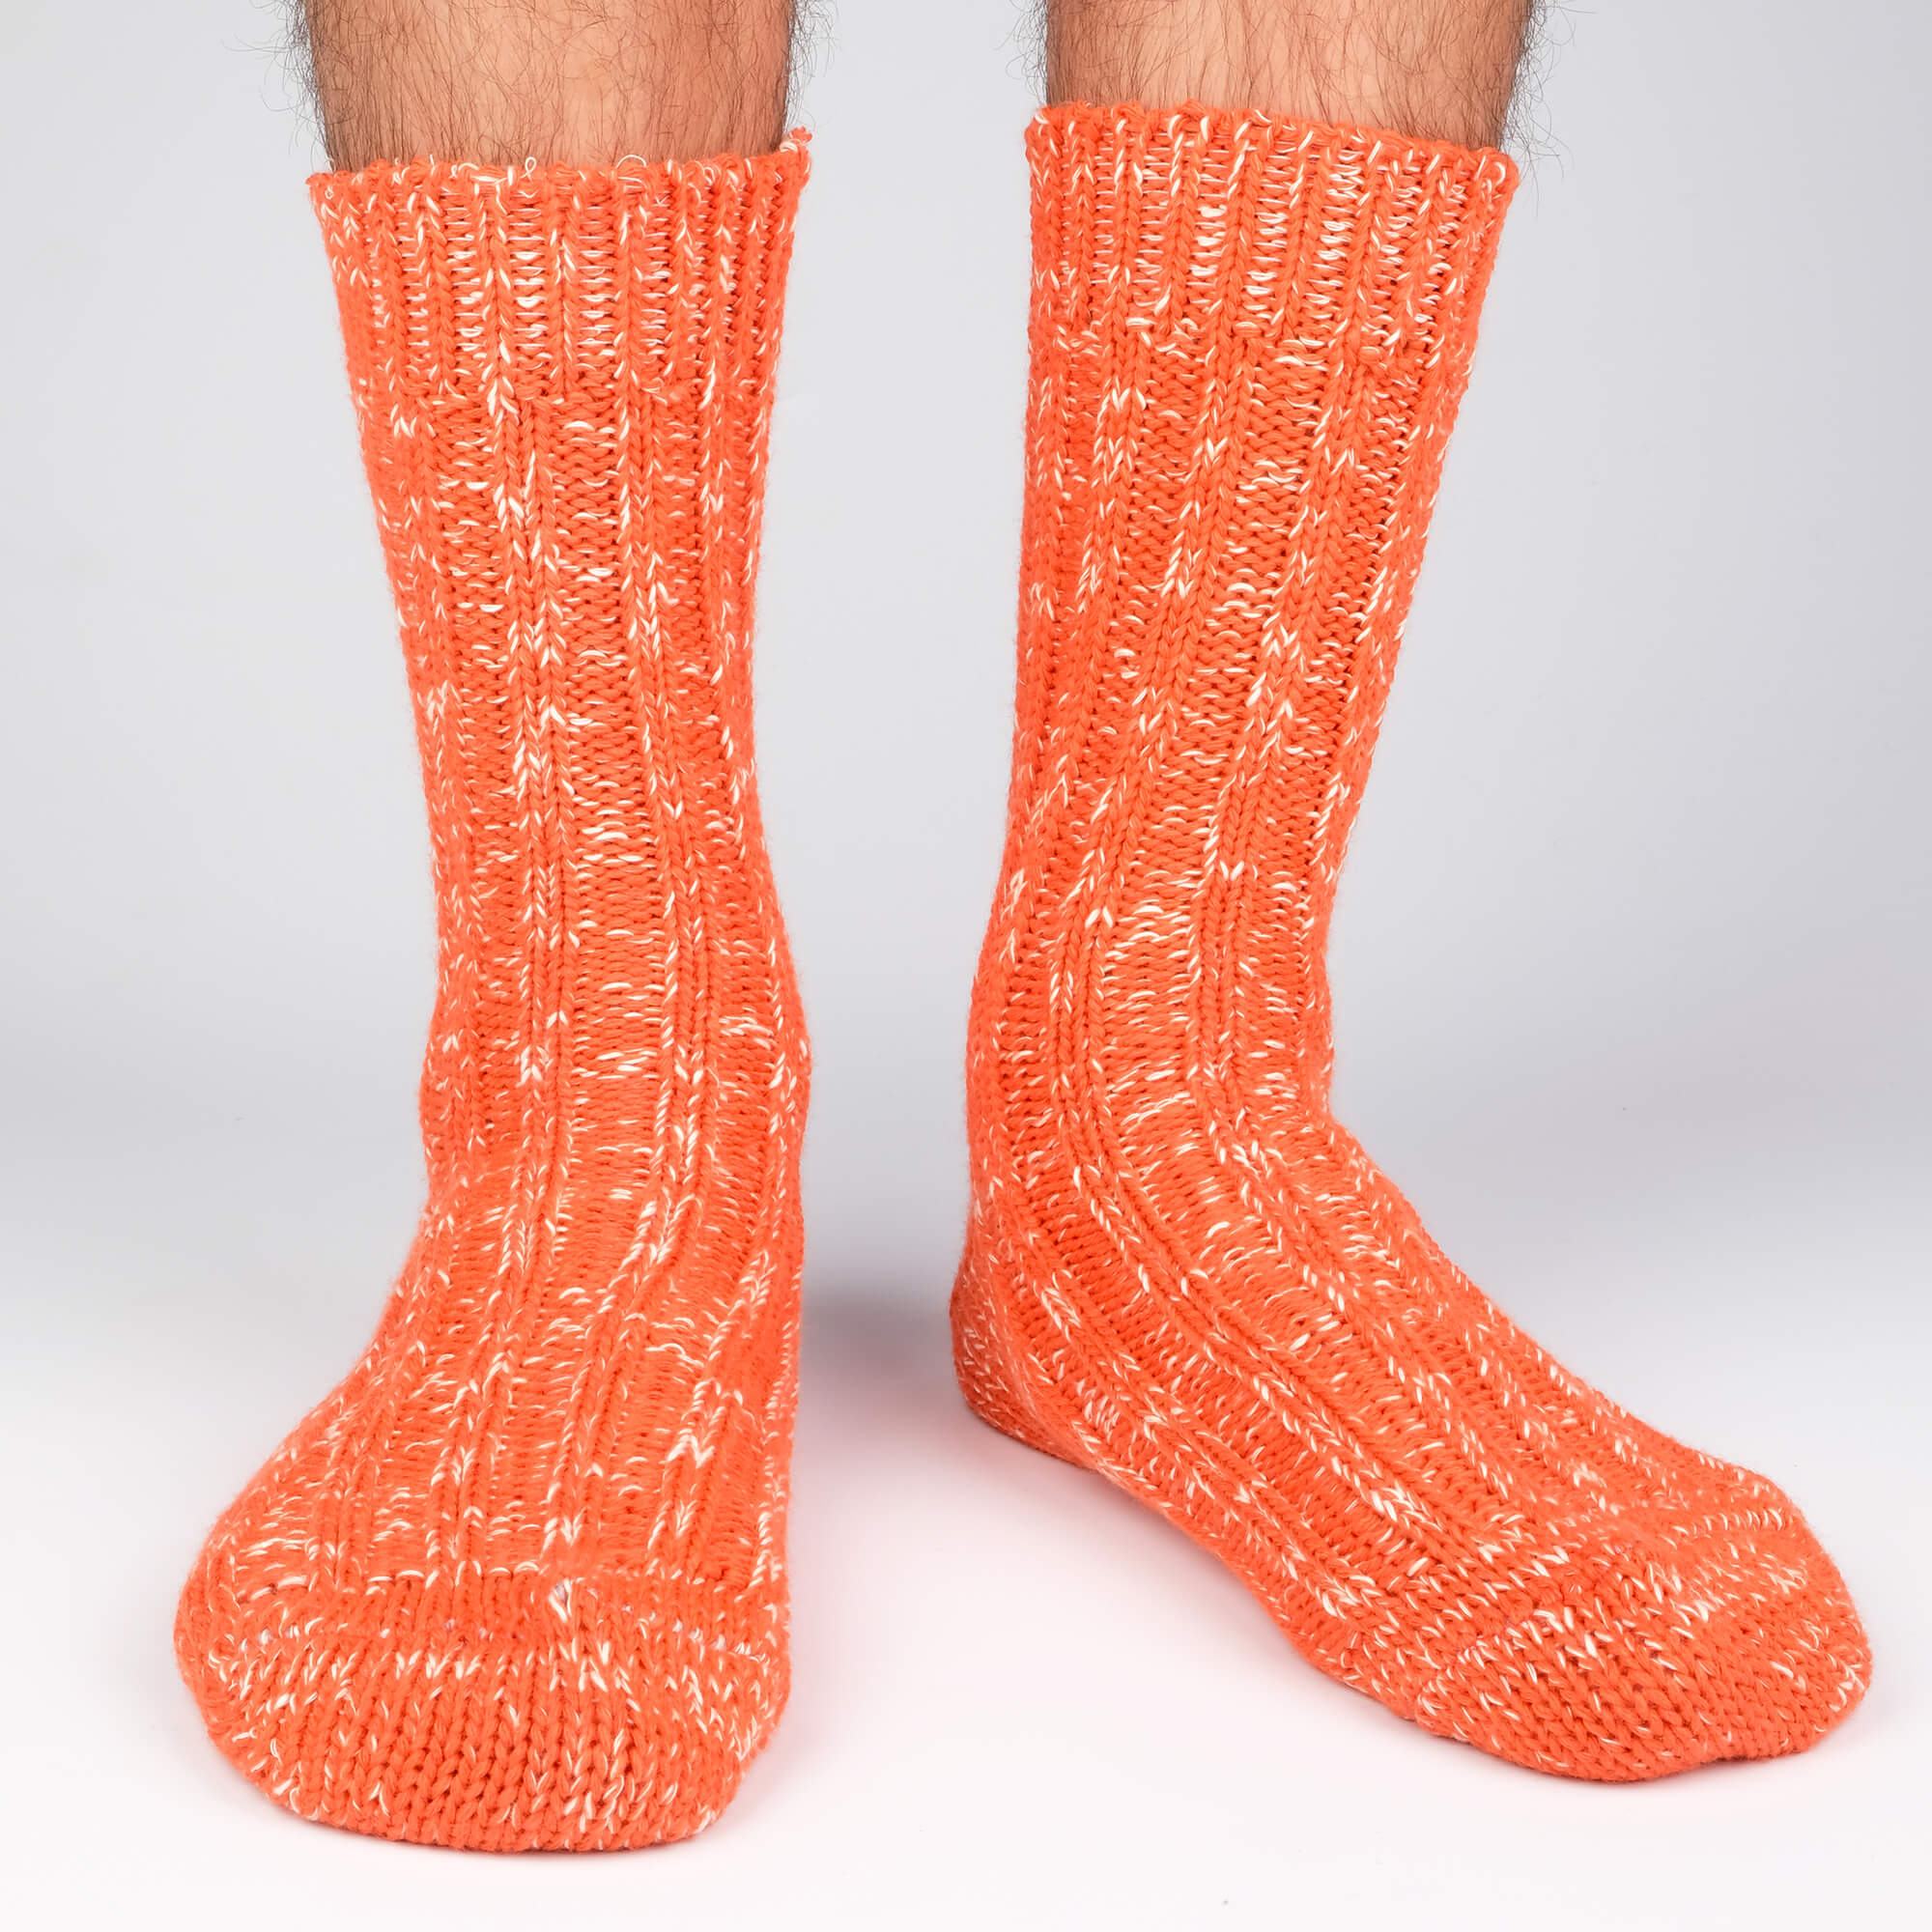 Mens Socks - Niseko Men's Socks - Orange⎪Etiquette Clothiers